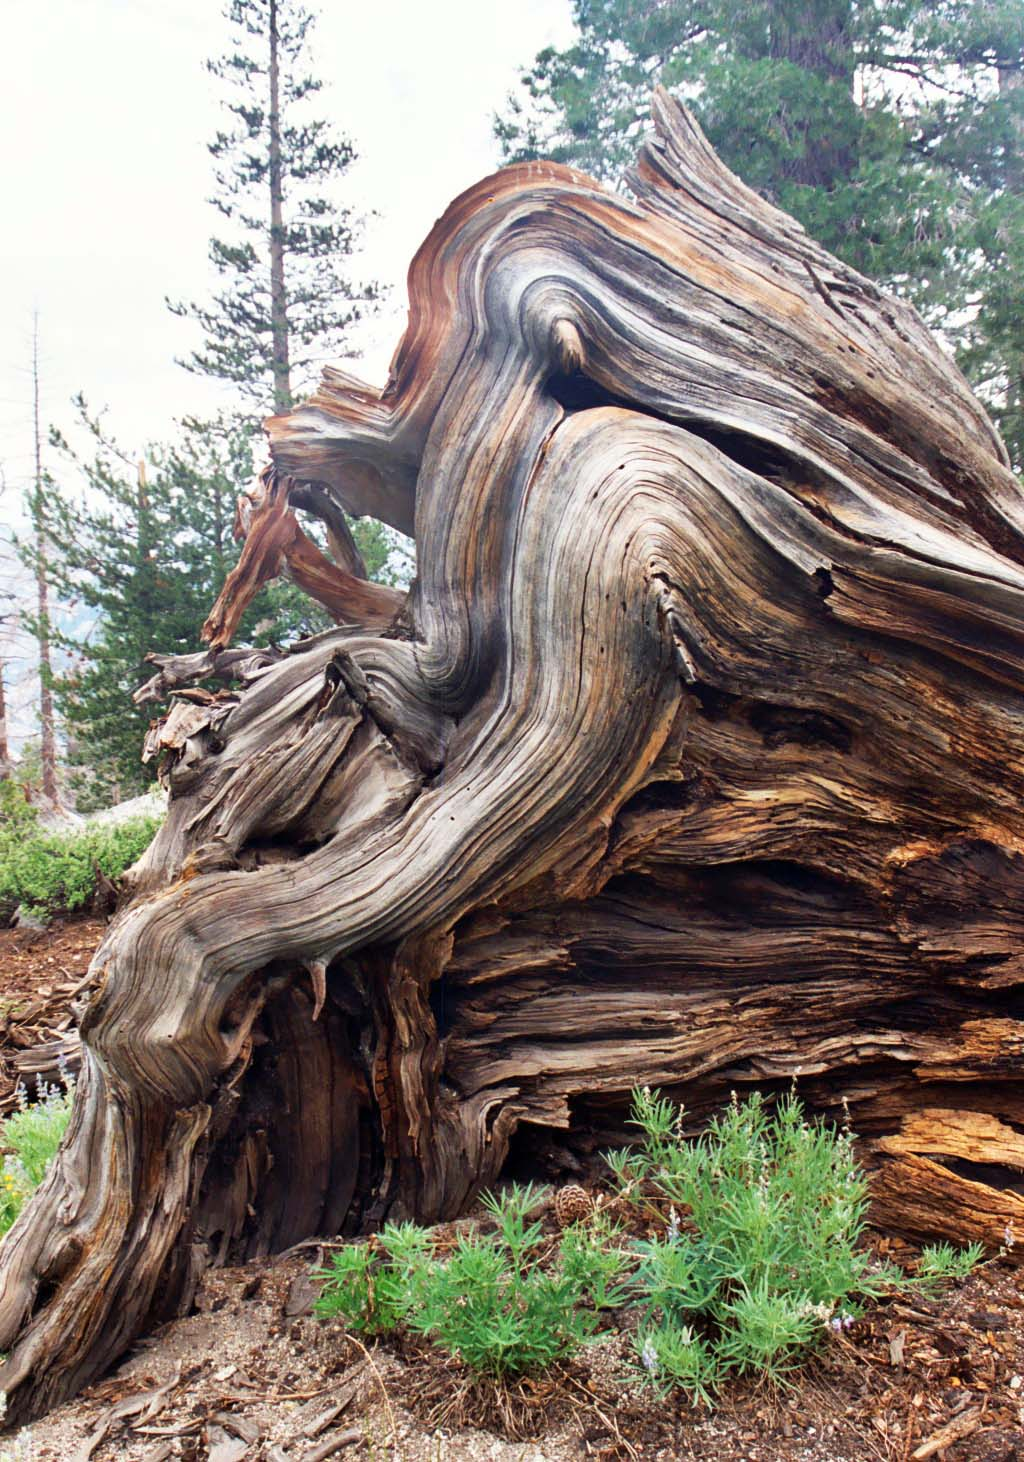 Pacific Crest trail downed tree displays beautiful grains of wood in its roots. Photo by Curtis Mekemson.